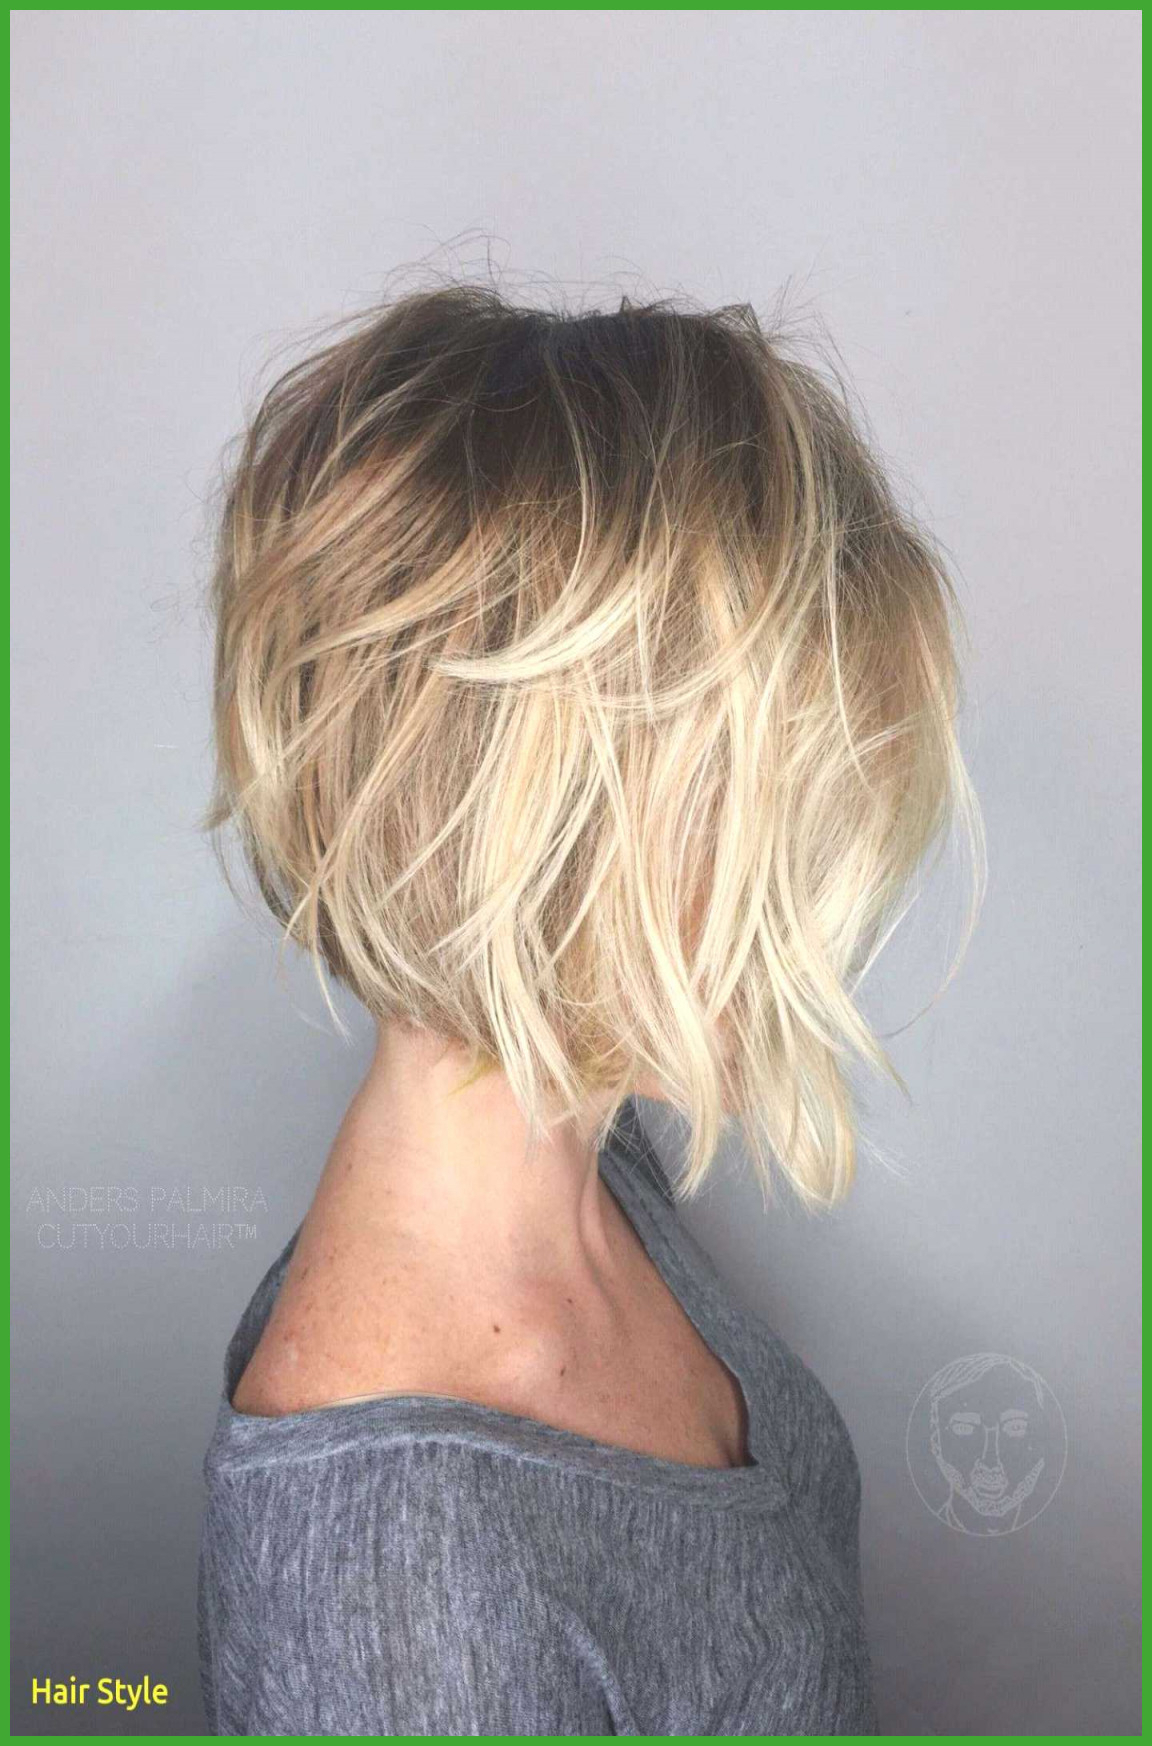 Medium Haircuts For Thick Hair 20 Awesome Layered Haircuts For Thick With Regard To Most Popular Medium Haircuts Bobs Thick Hair (View 13 of 20)